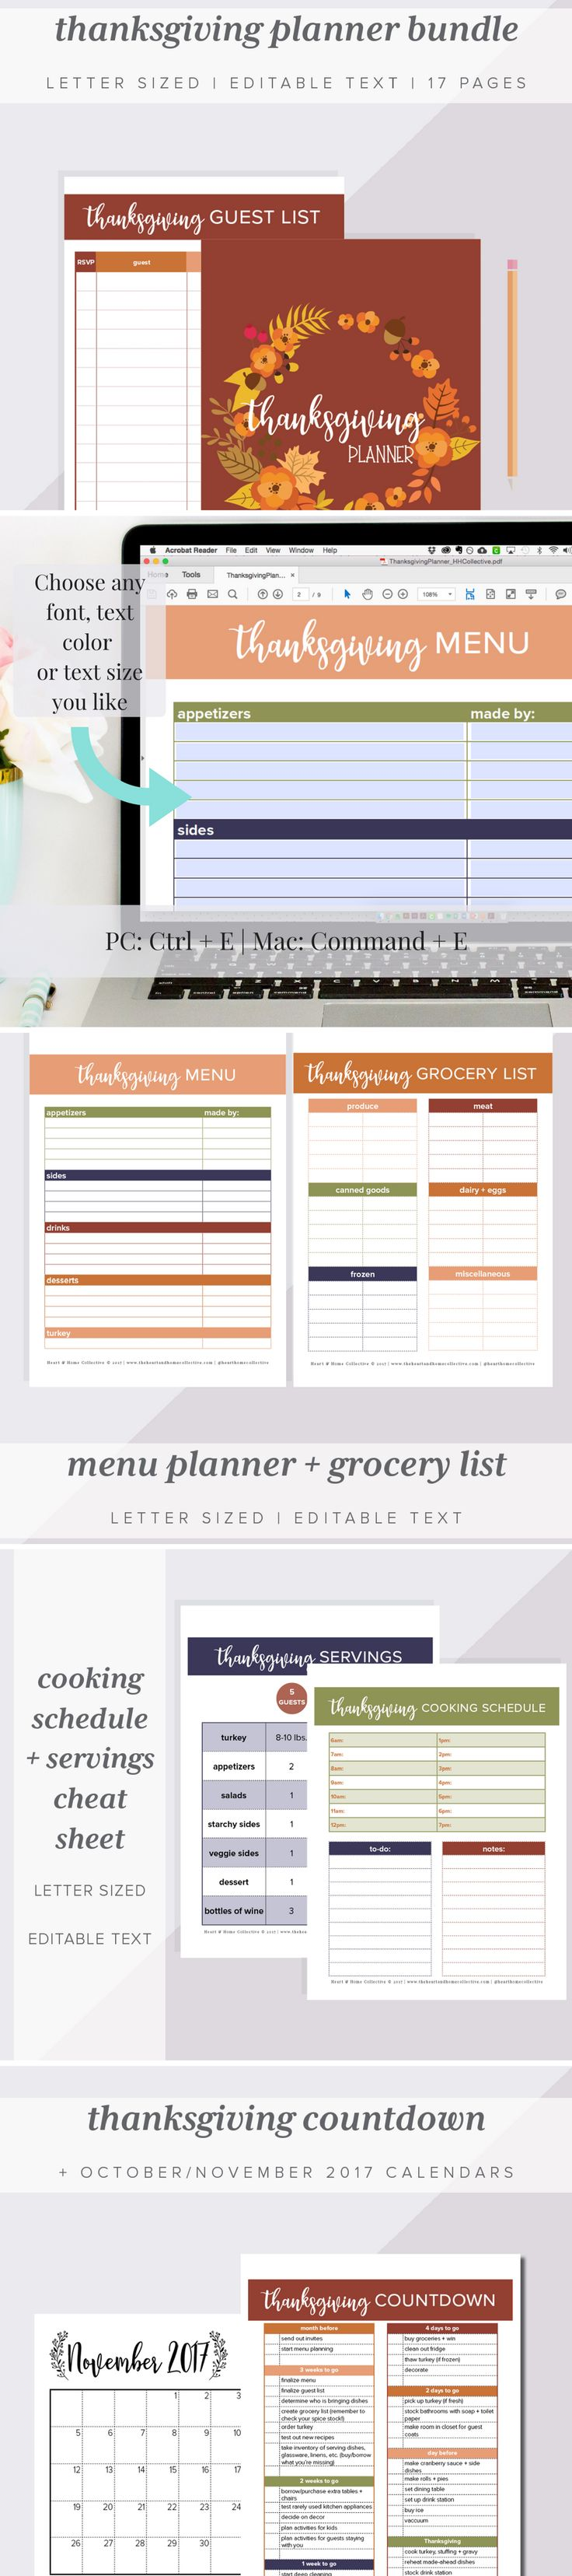 This printable Thanksgiving planner bundle has everything you need to pull off Thanksgiving day + dinner with ease! This Thanksgiving planner includes 19 printable pages to help you organize a fantastic Thanksgiving dinner, including a guest list, menu planner, shopping list, cooking schedule and much more!